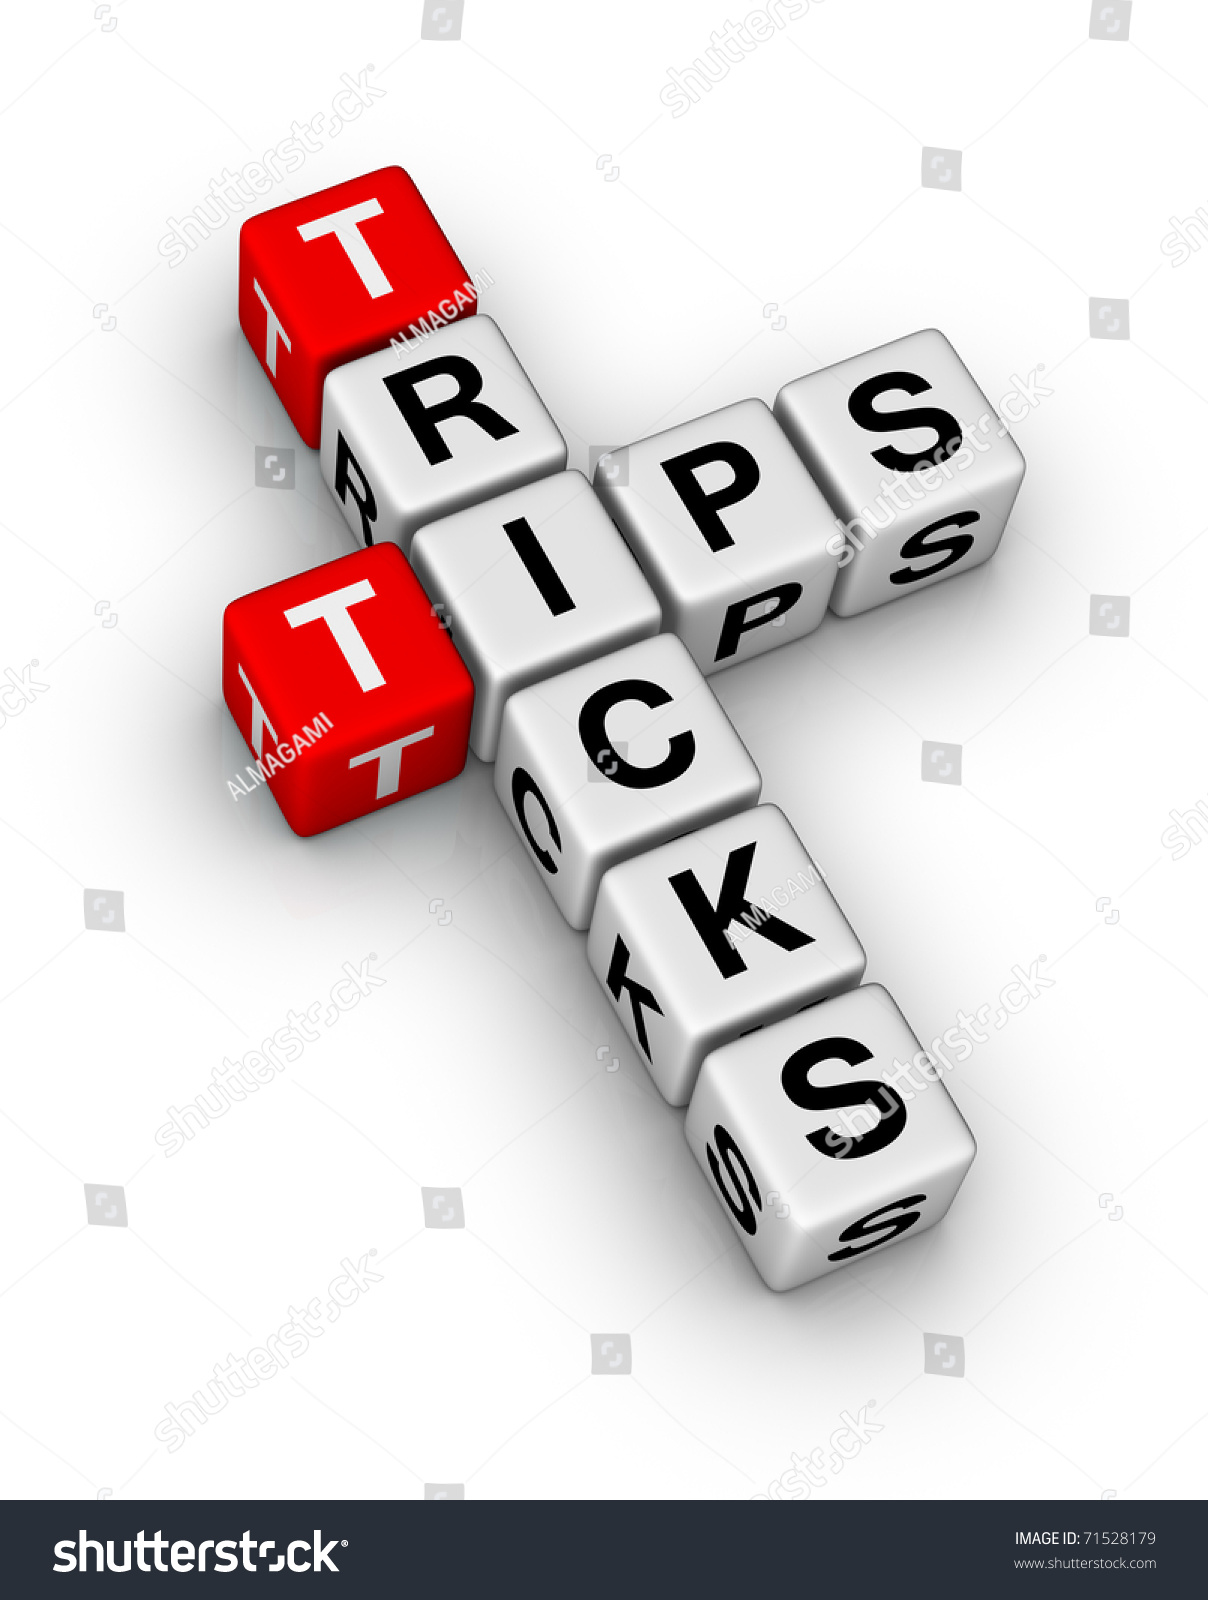 helpful tips and tricks symbol stock photo 71528179